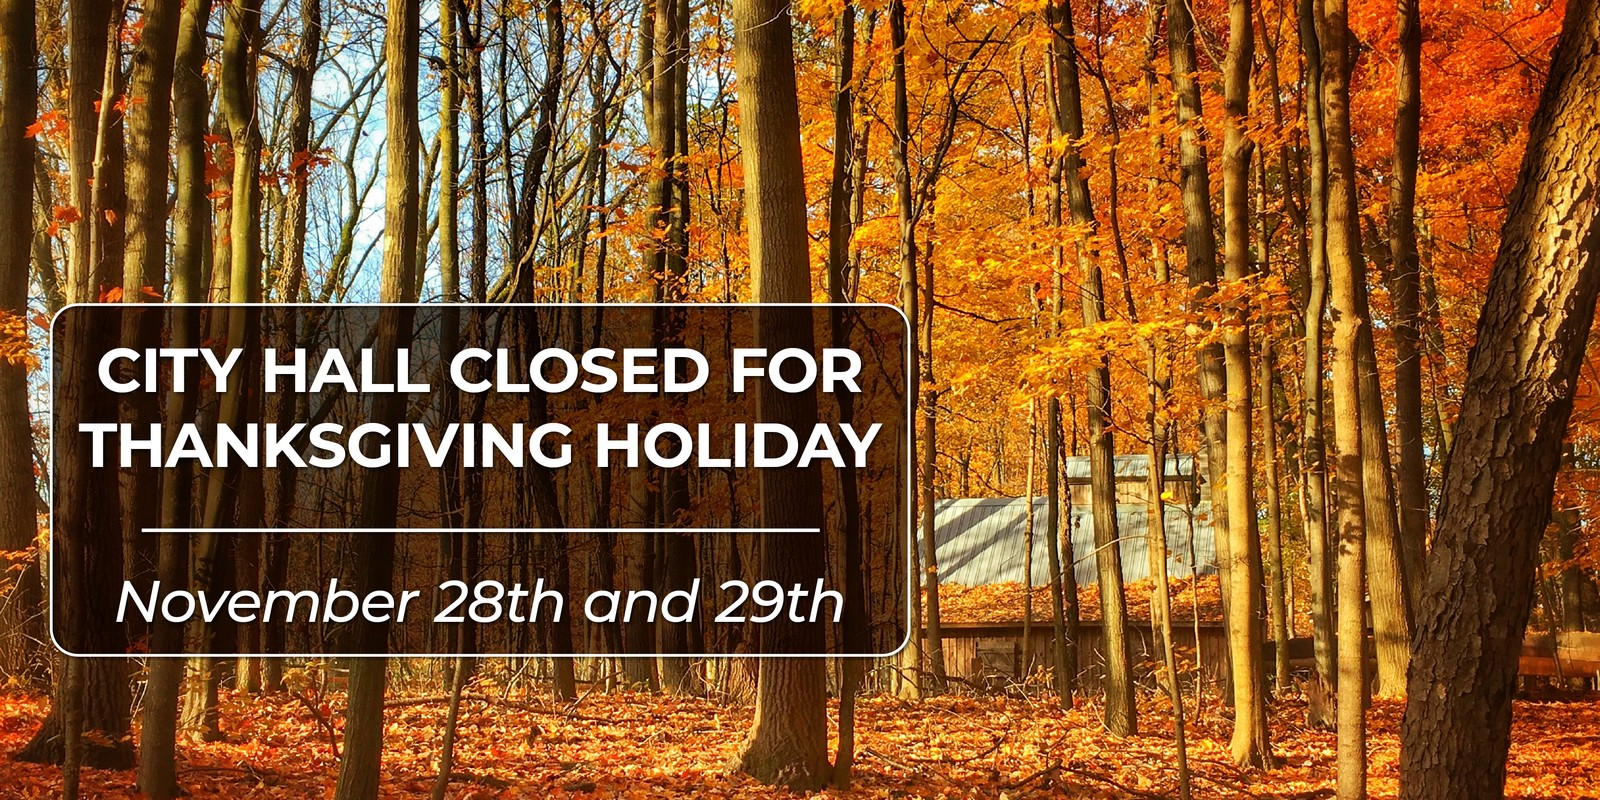 City Hall Closed for Thanksgiving Holiday